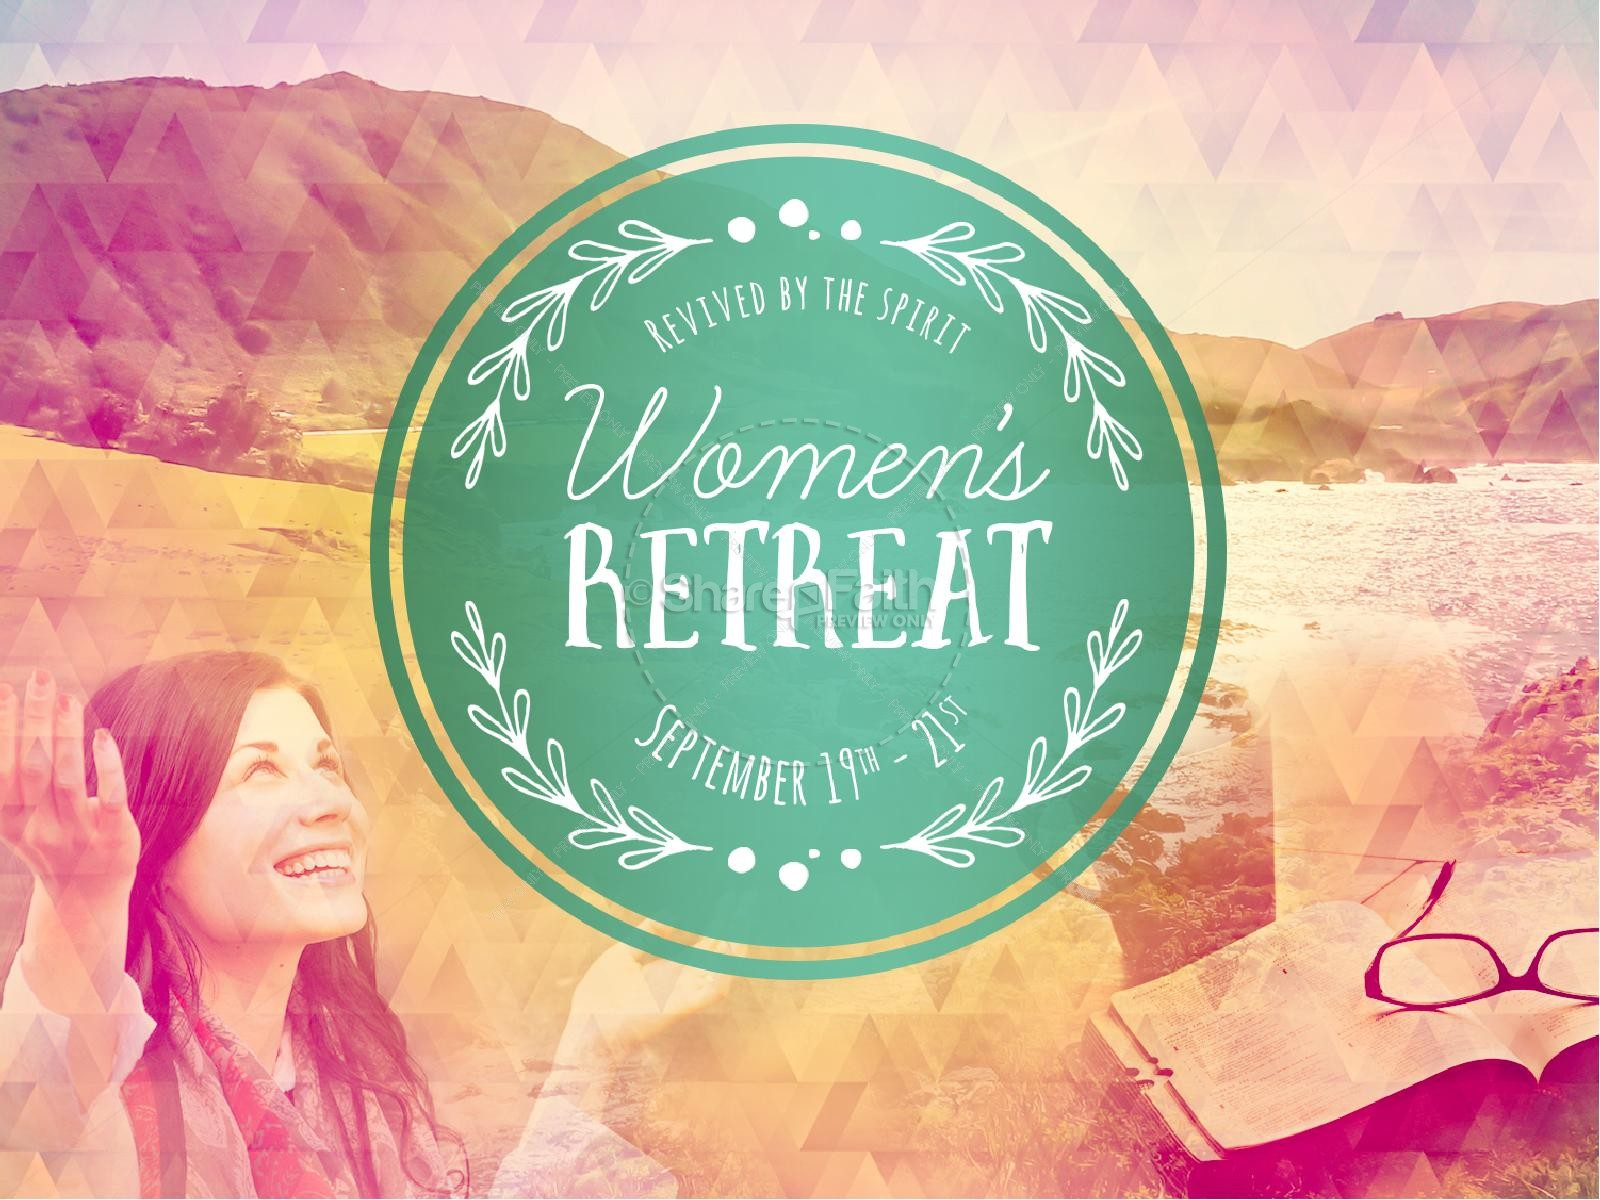 Women's Retreat Religious PowerPoint